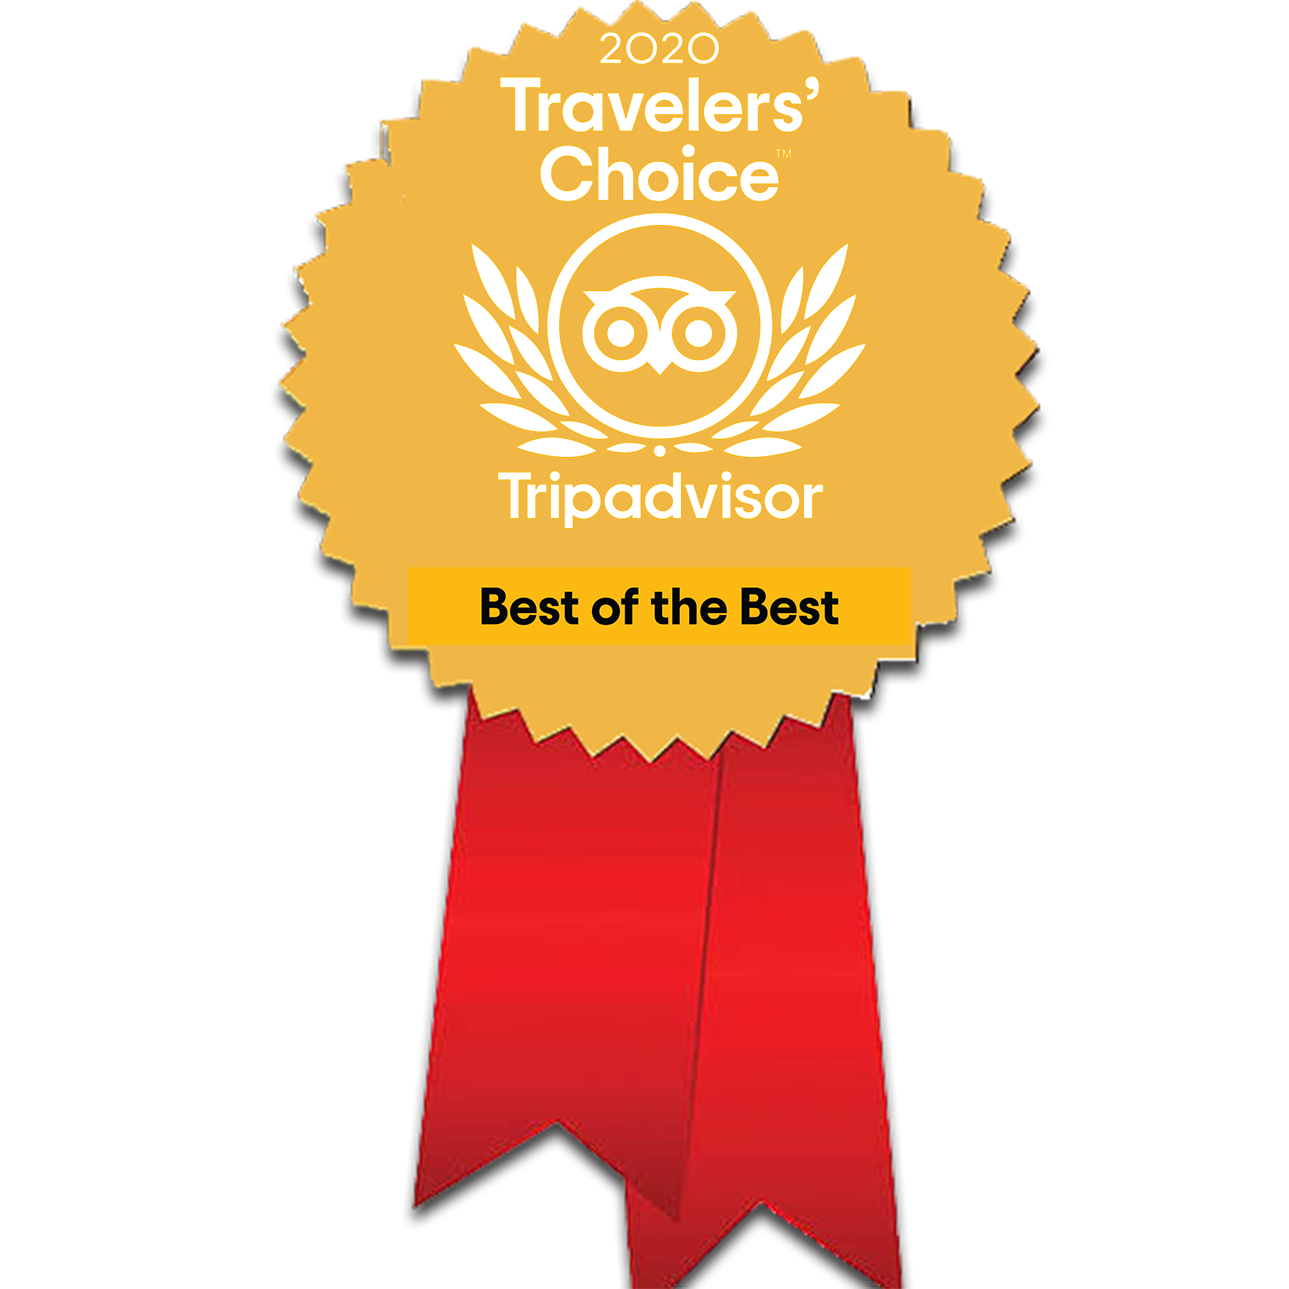 Prix Travellers' Choice Best of the Best - Trip Advisor